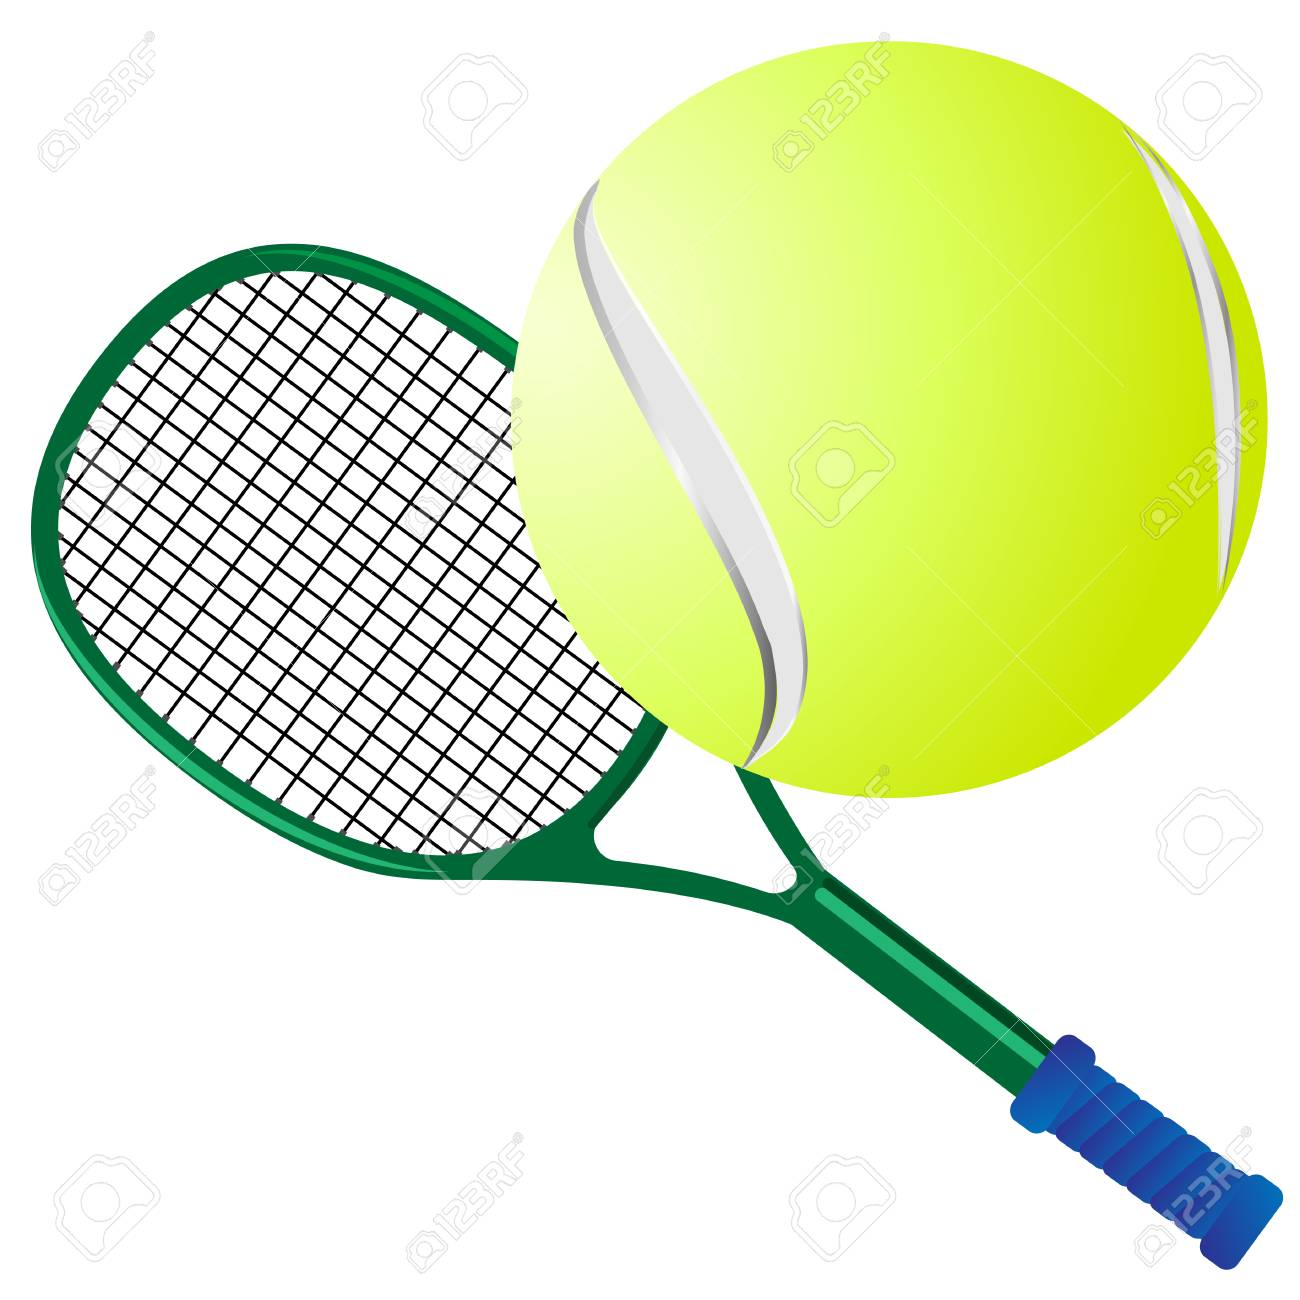 Vector Drawing Of Green Tennis Racket And Yellow Ball For Tennis